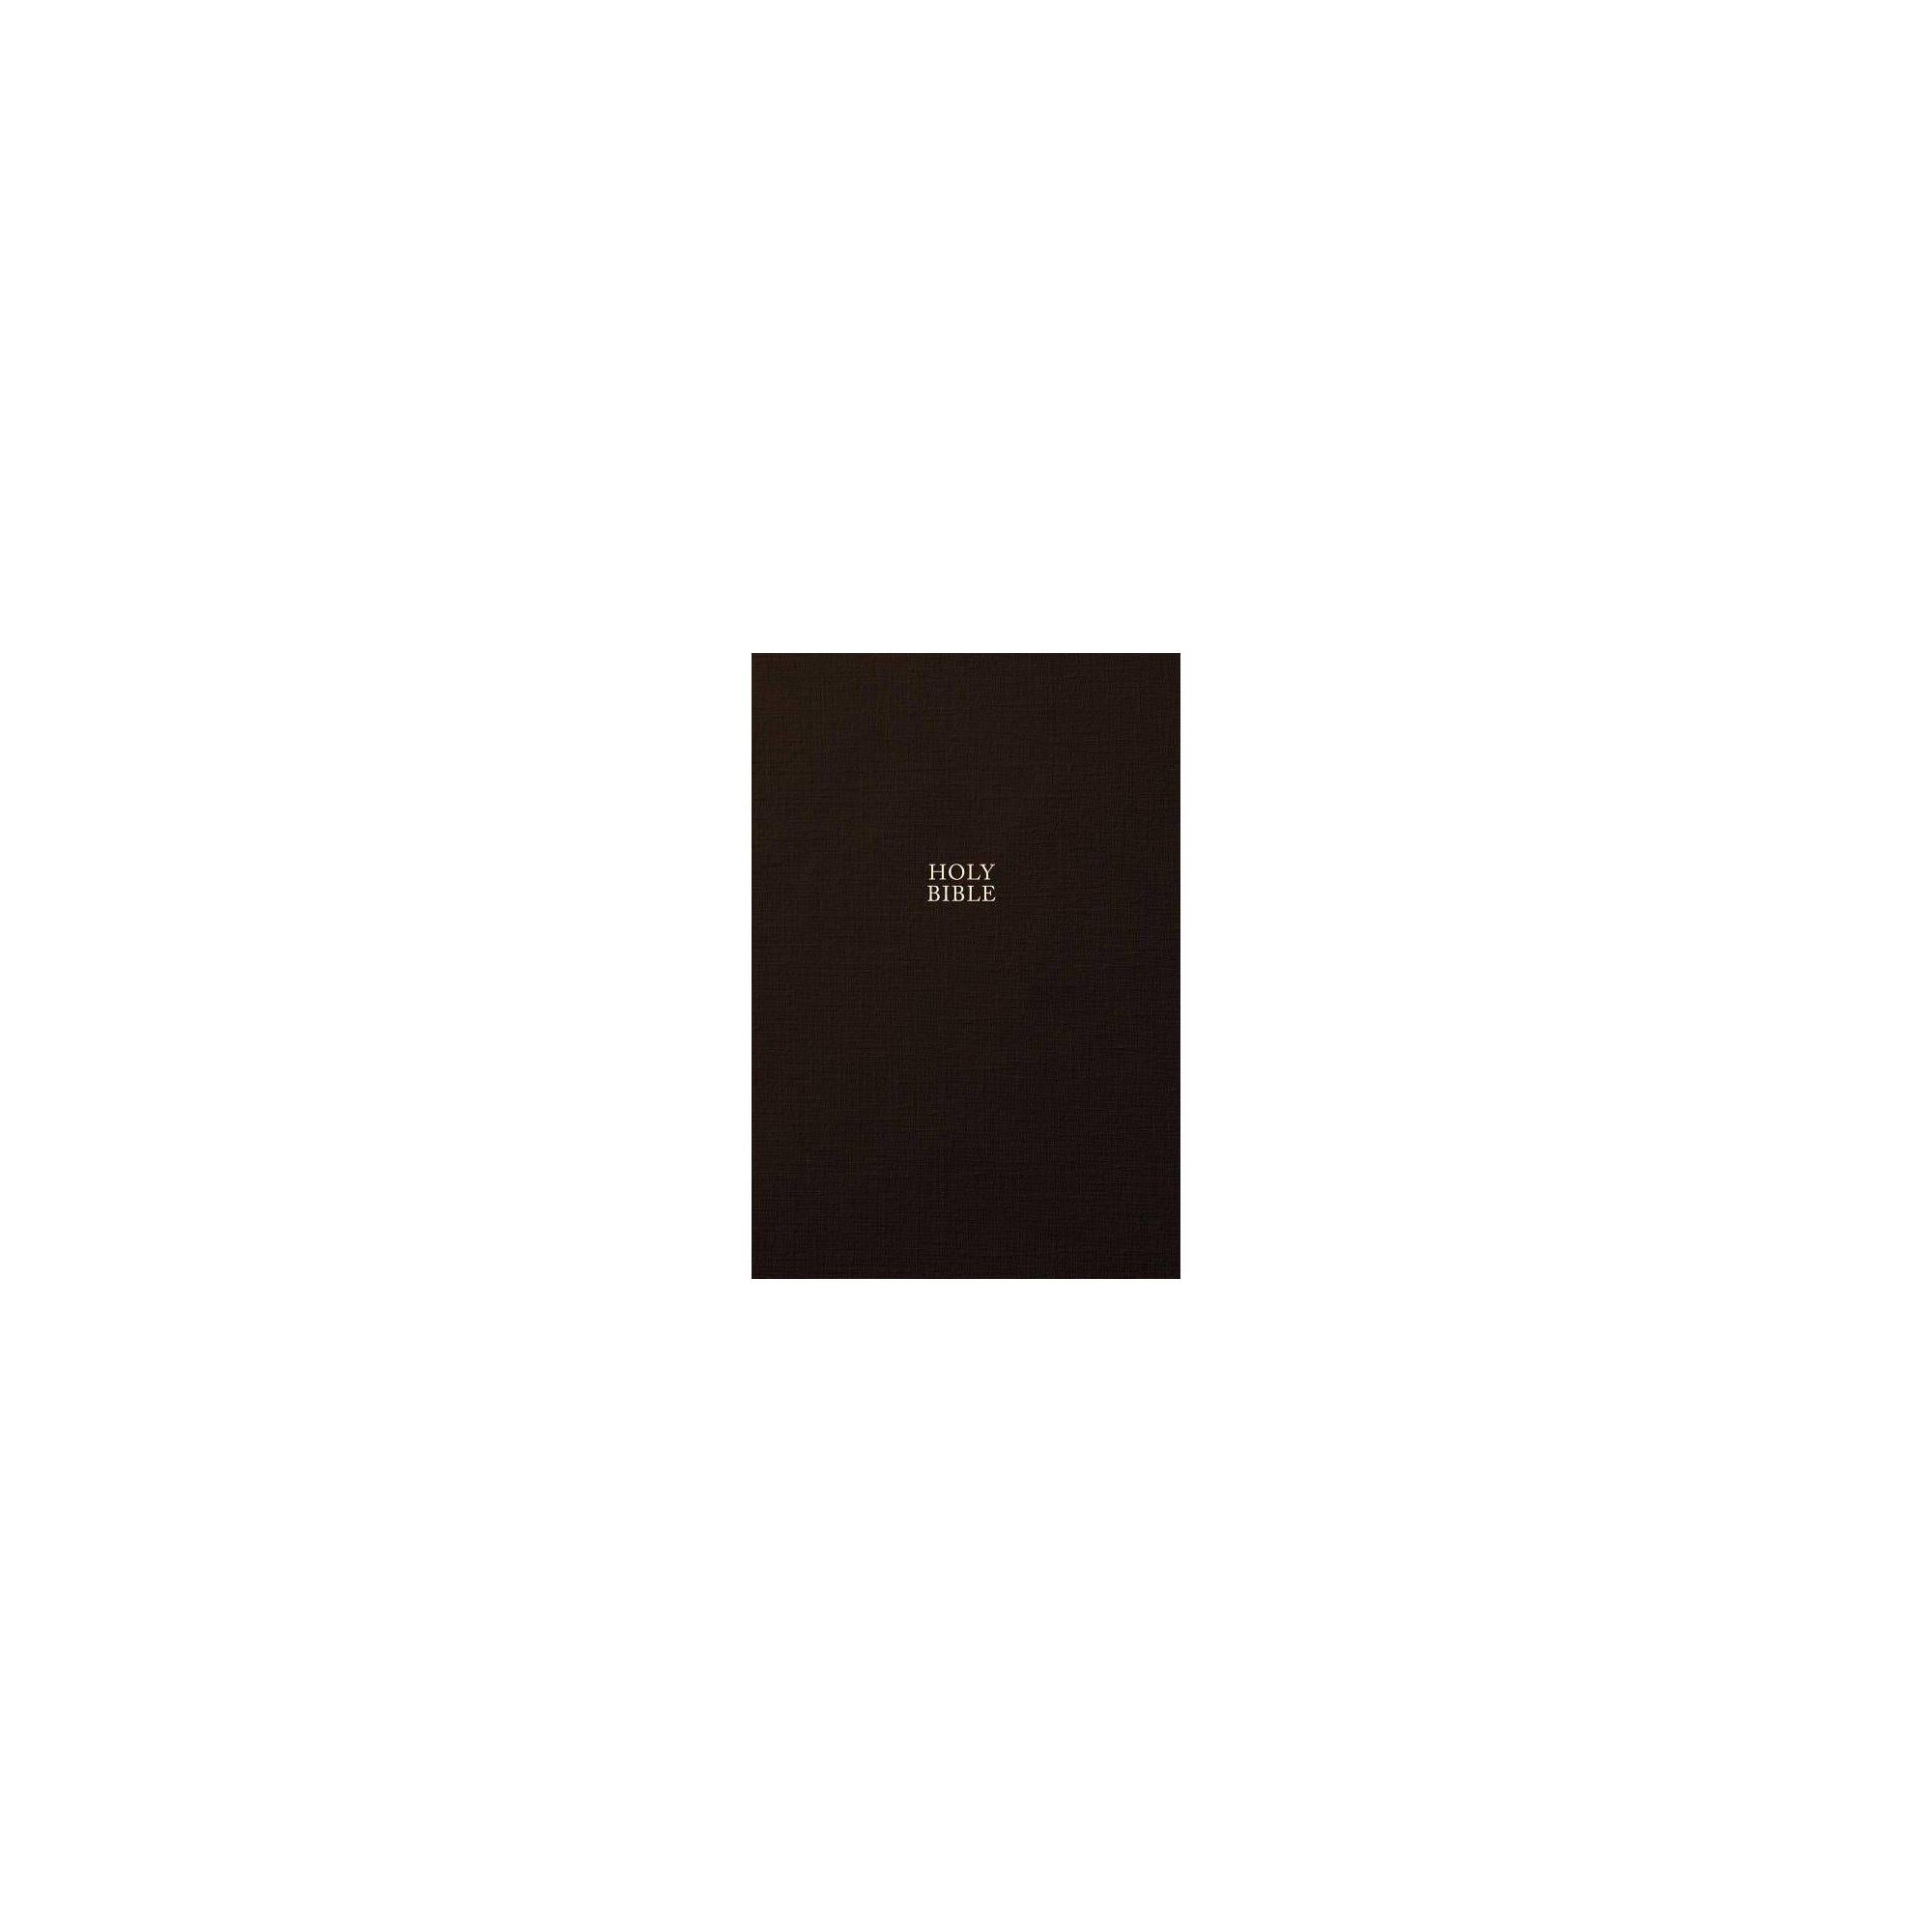 The Kjv Open Bible Hardcover Brown Red Letter Edition Comfort